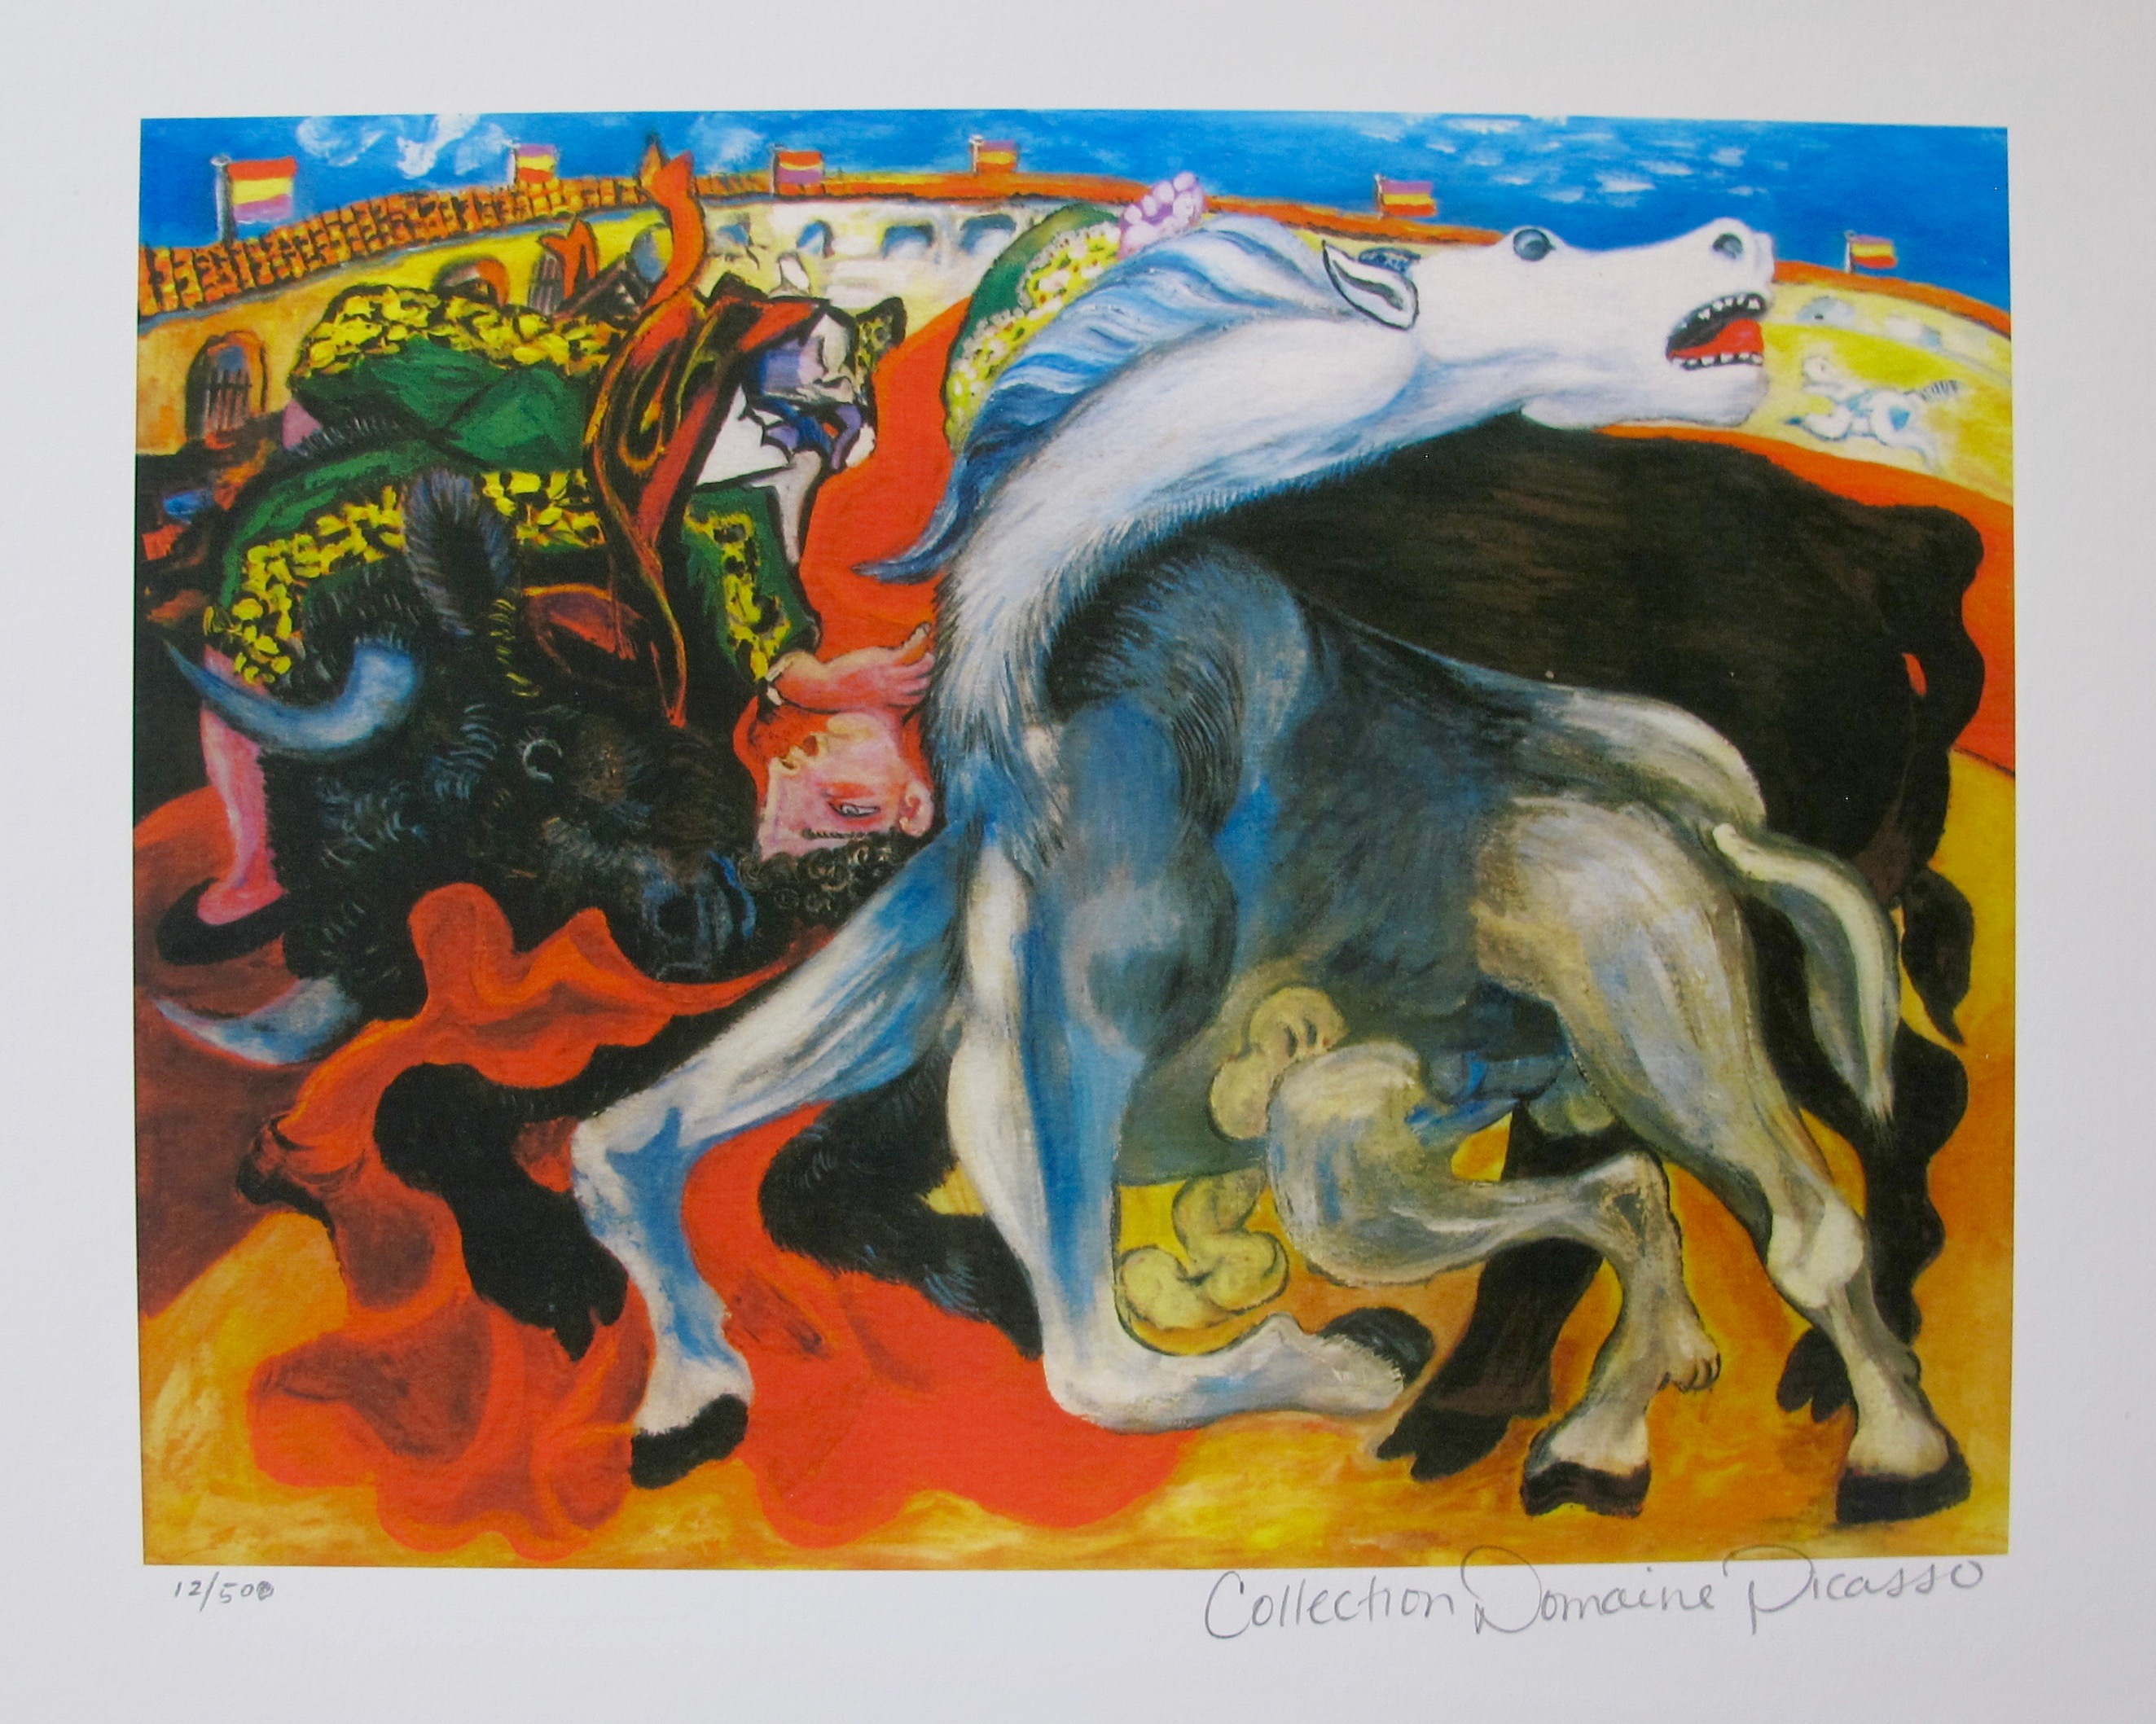 Pablo Picasso BULLFIGHT, DEATH OF A TOREADOR Estate Signed Limited Edition Giclee